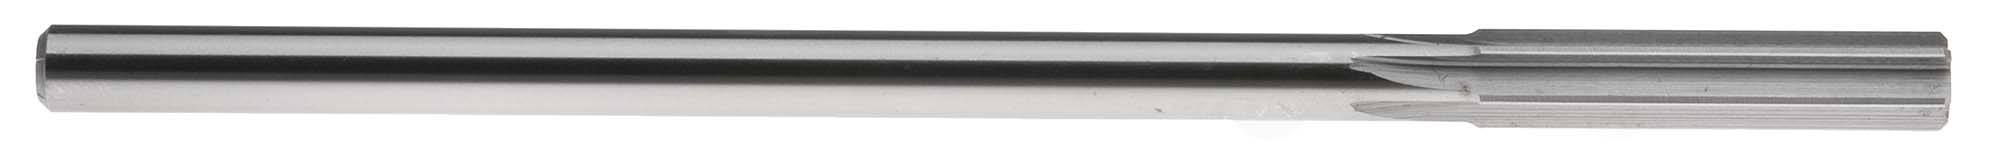 ".3745 "" Dowel Pin Size Machine Reamer, High Speed Steel"